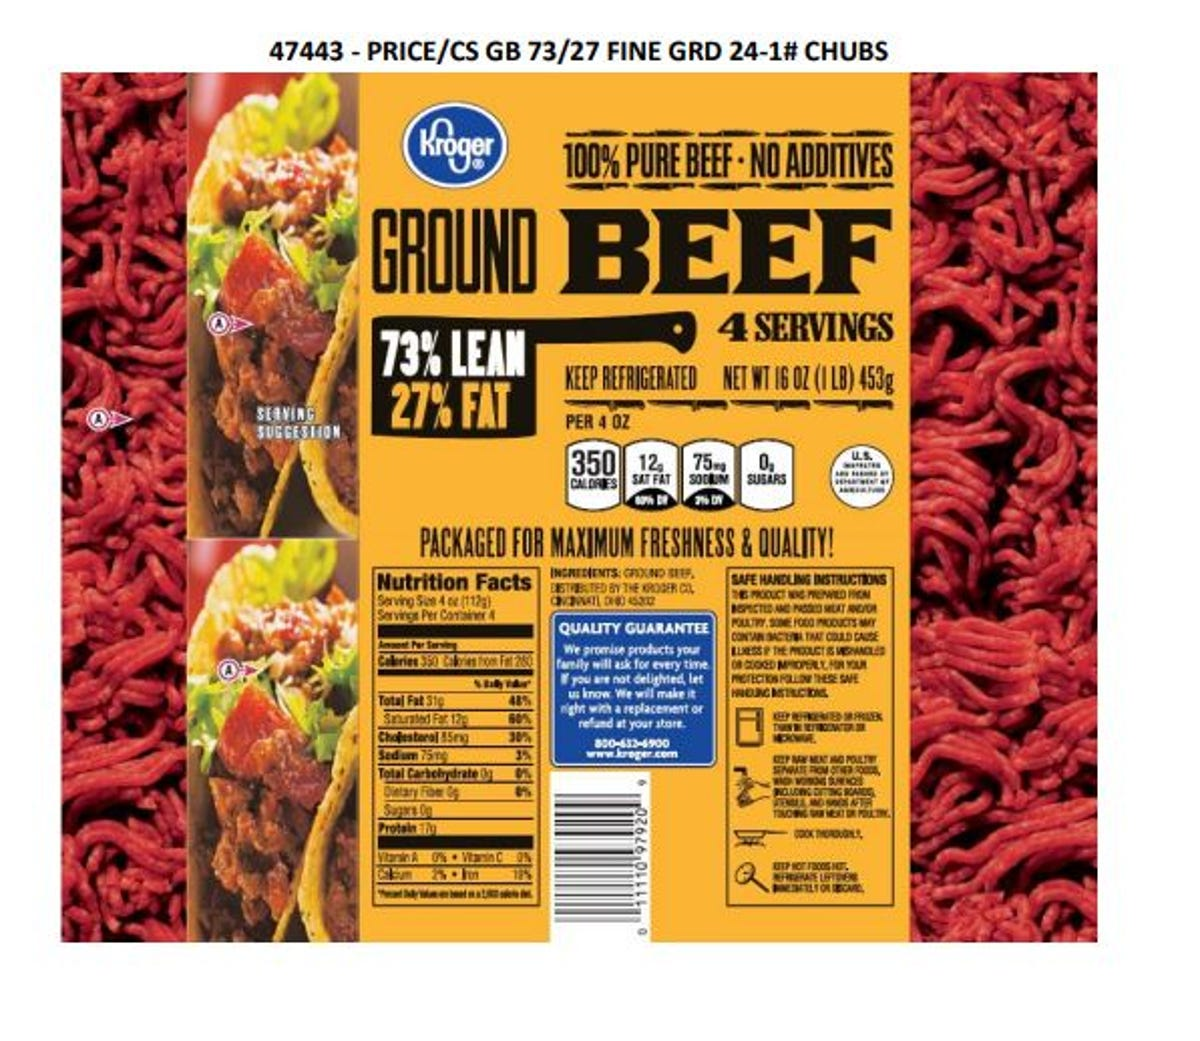 JBS Tolleson ground beef recall: Kroger product contained